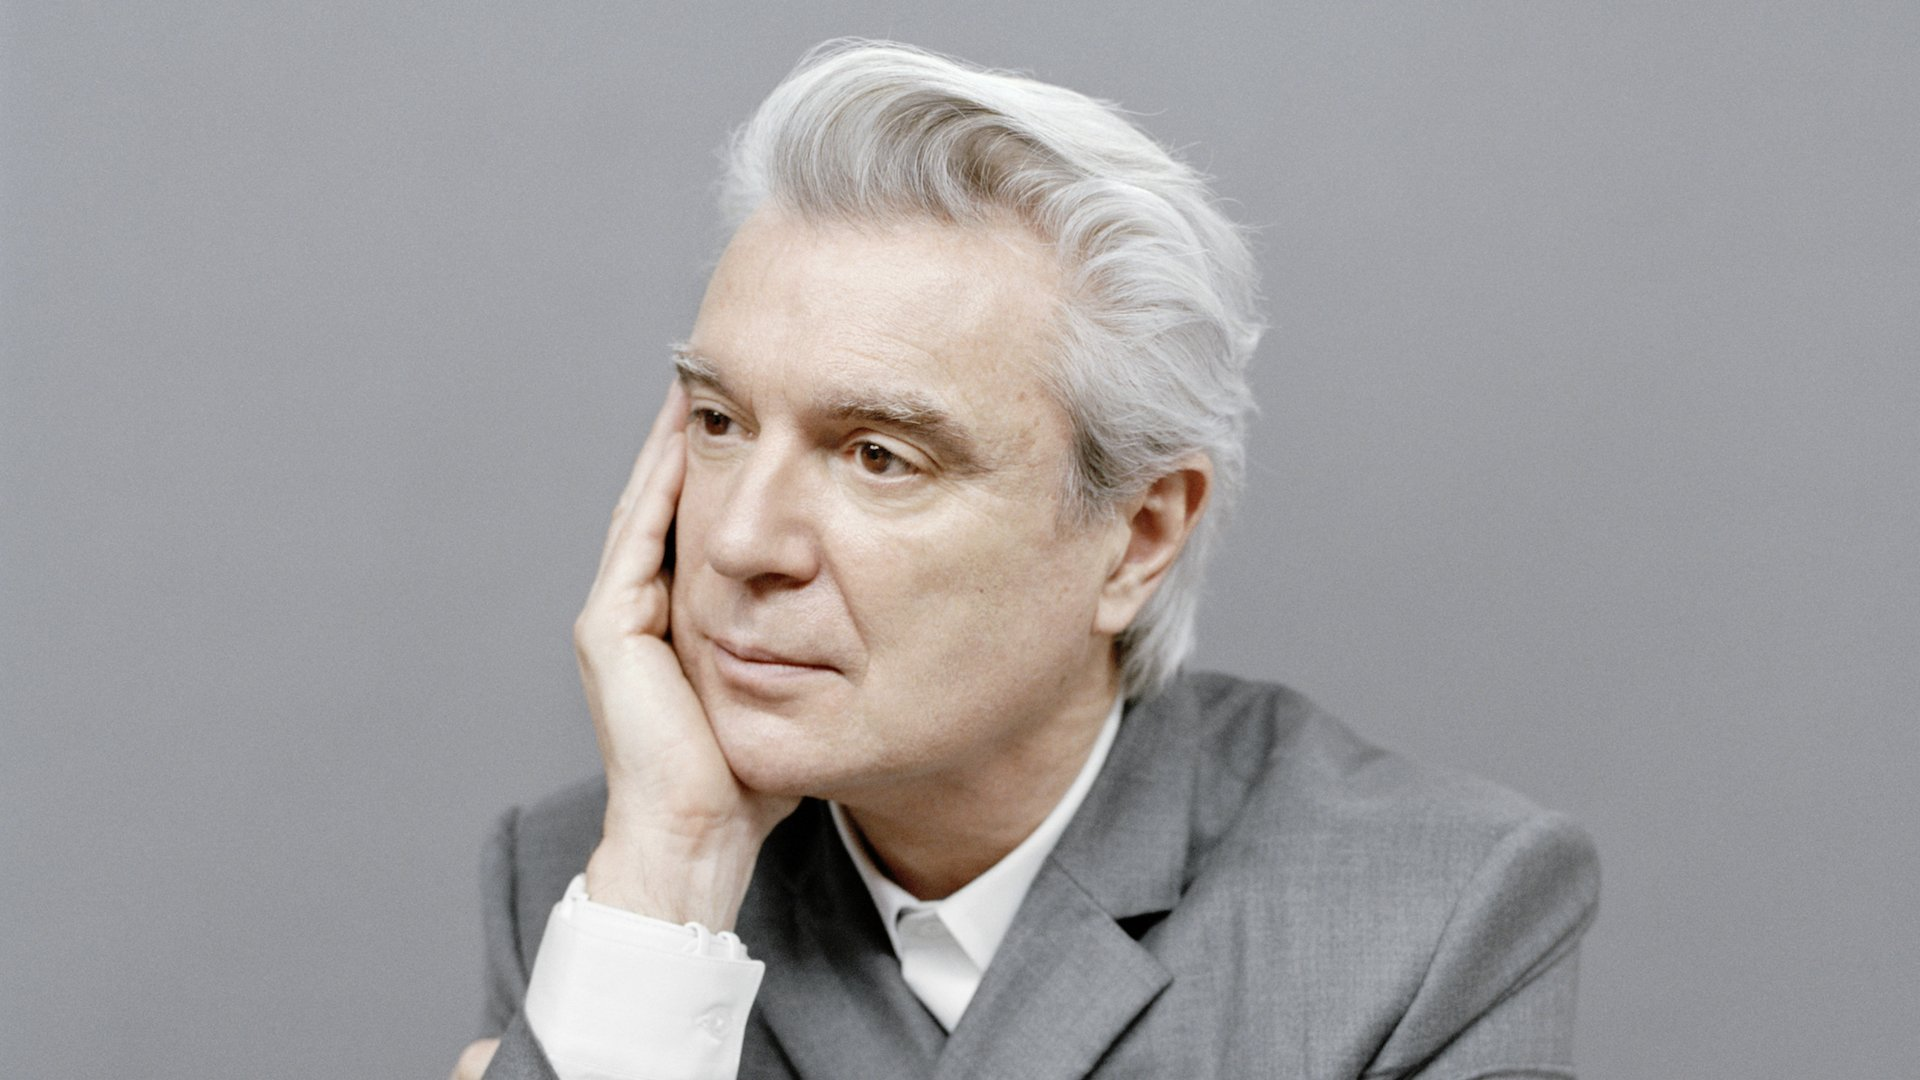 David Byrne Issues Apology for Wearing Blackface